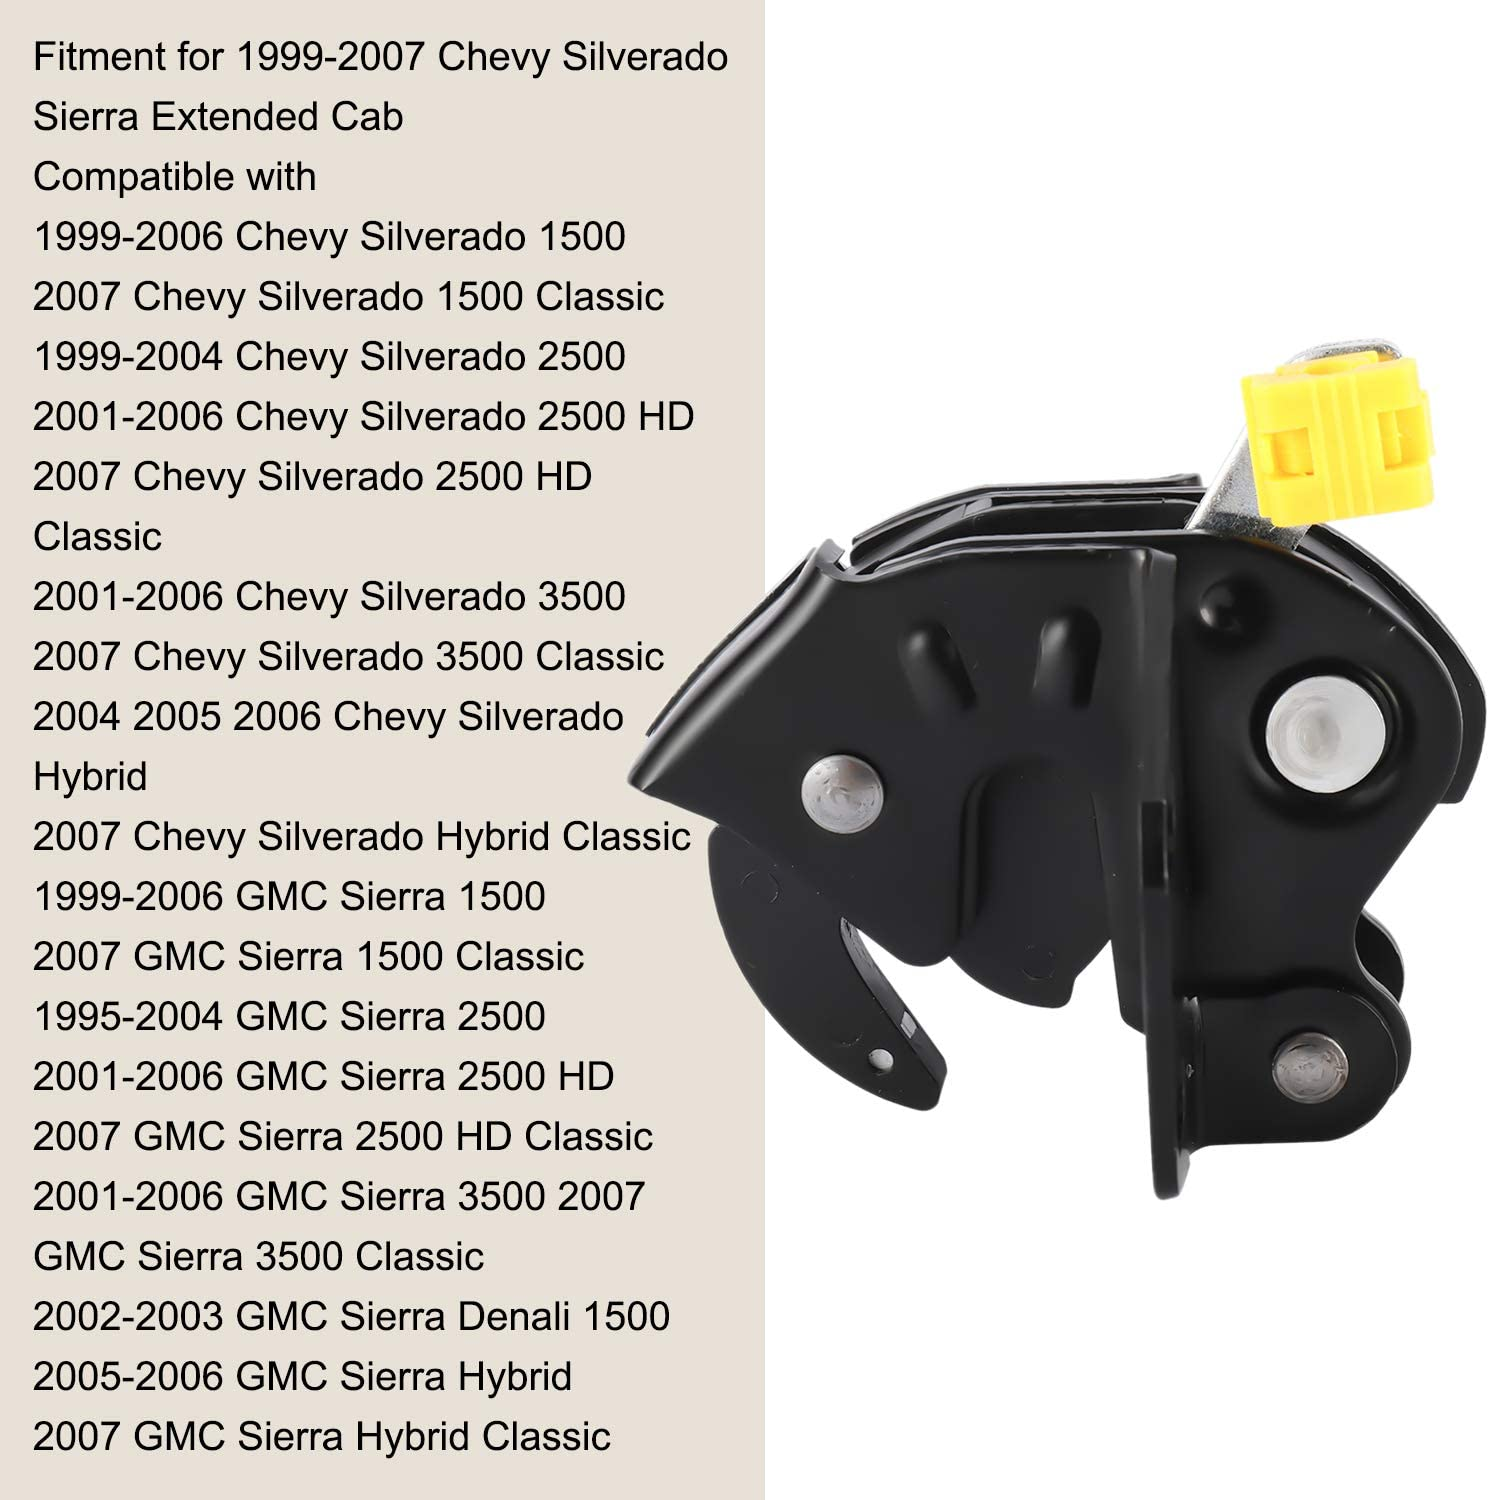 NovelBee 10356951 Lower 3rd Rear Door Lock Latch Actuator Assembly for 1999-2007 Chevy Silverado Sierra Extended Cab